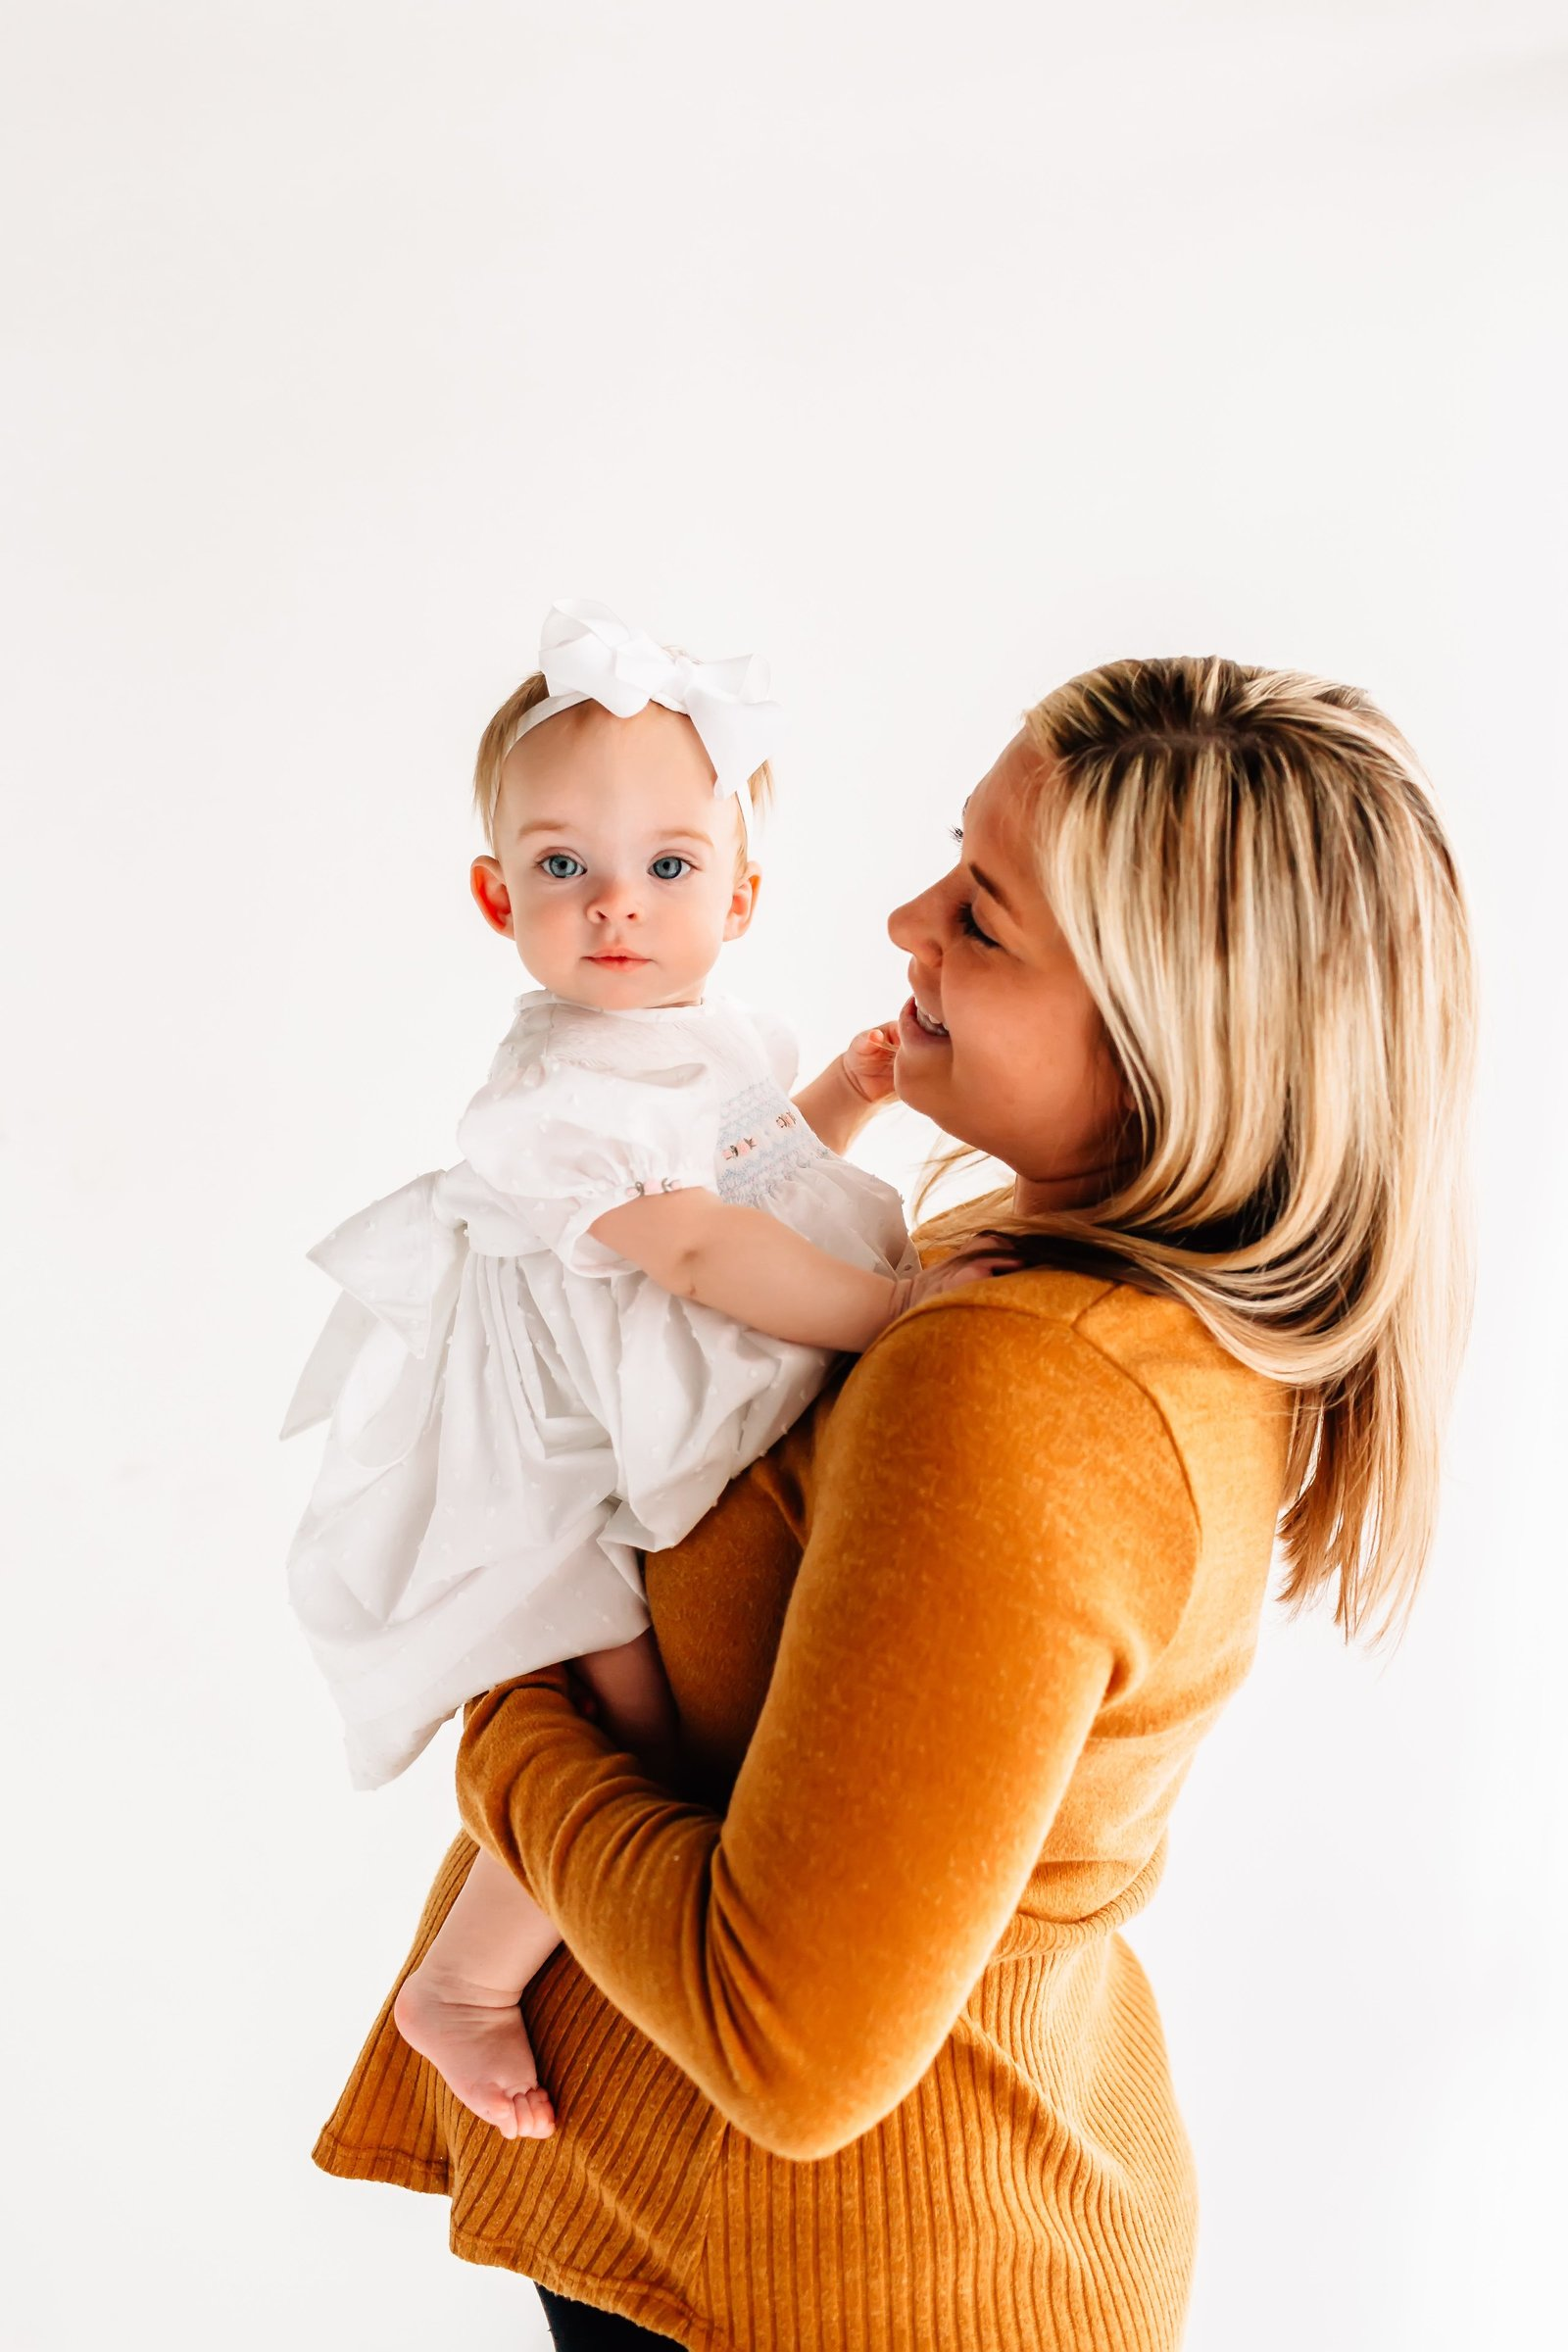 St_Louis_Baby_Photographer_Kelly_Laramore_Photography_21